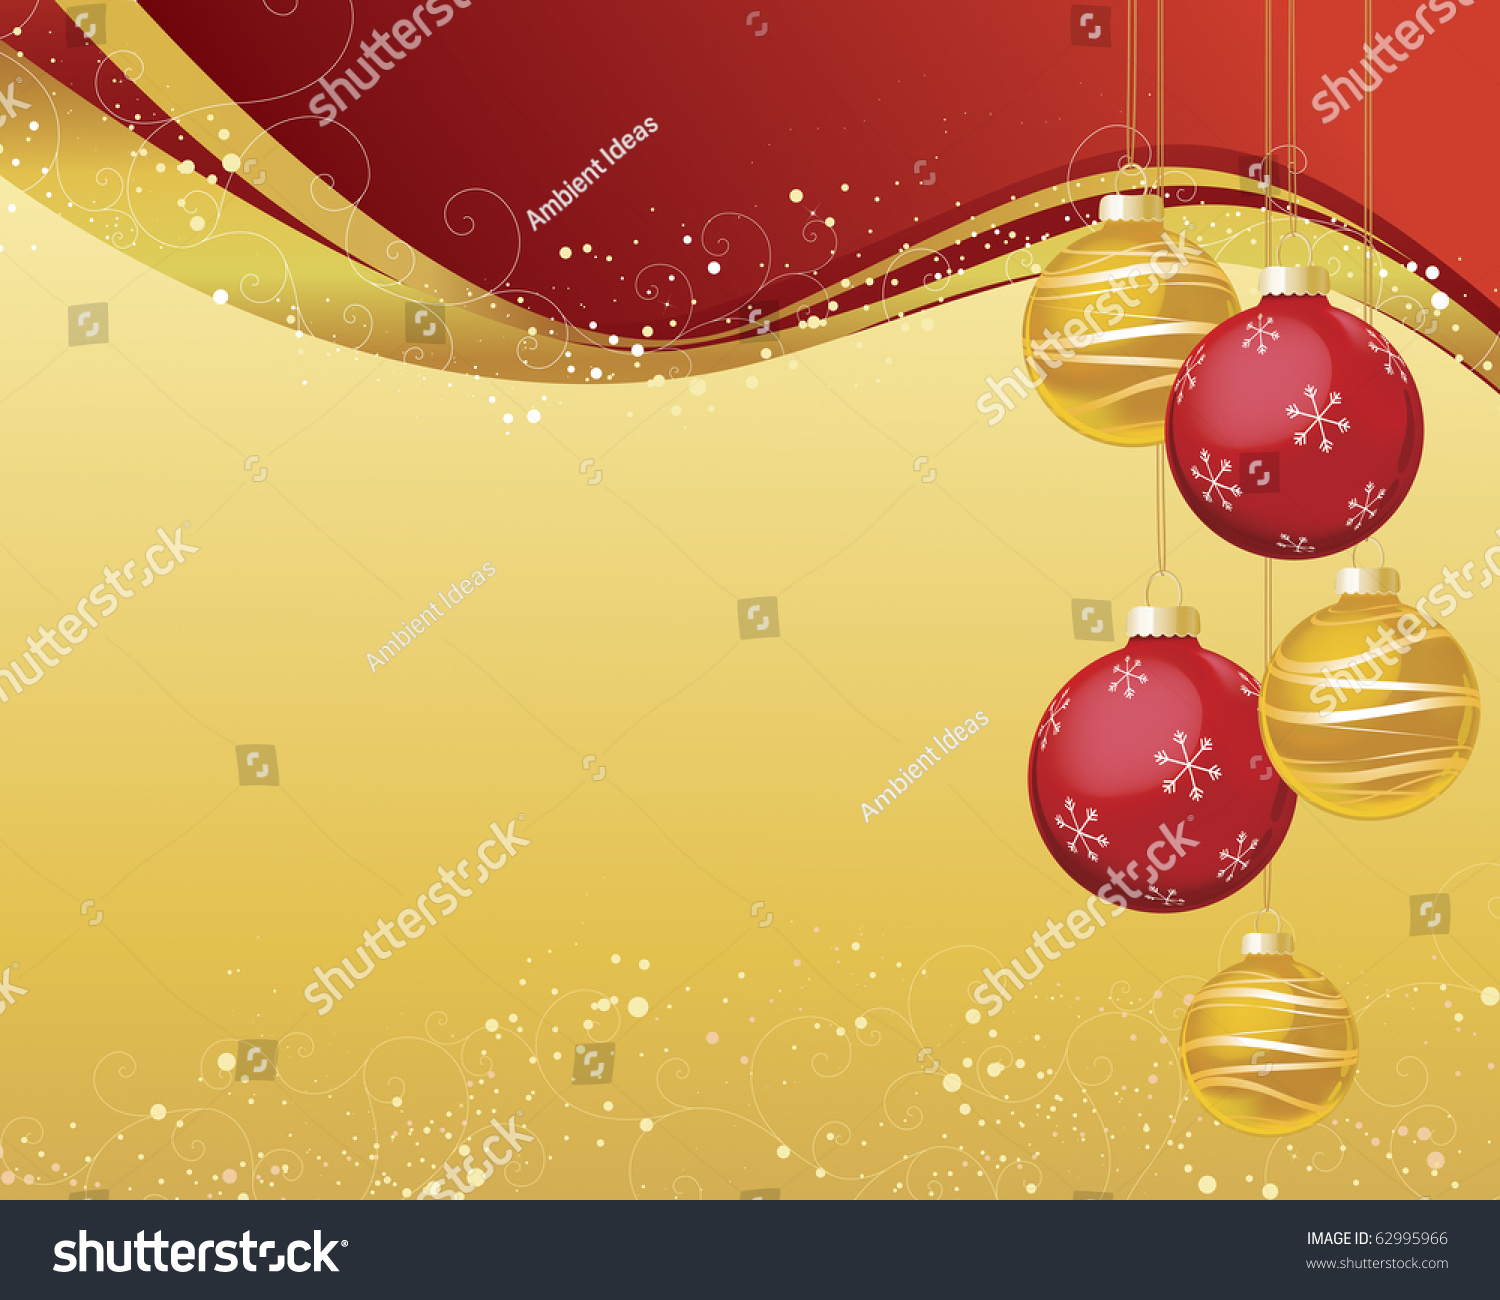 Red and gold christmas ornaments - Red And Gold Christmas Ornaments On Shiny Wave Background With Snow Speckles And Decorative Curls